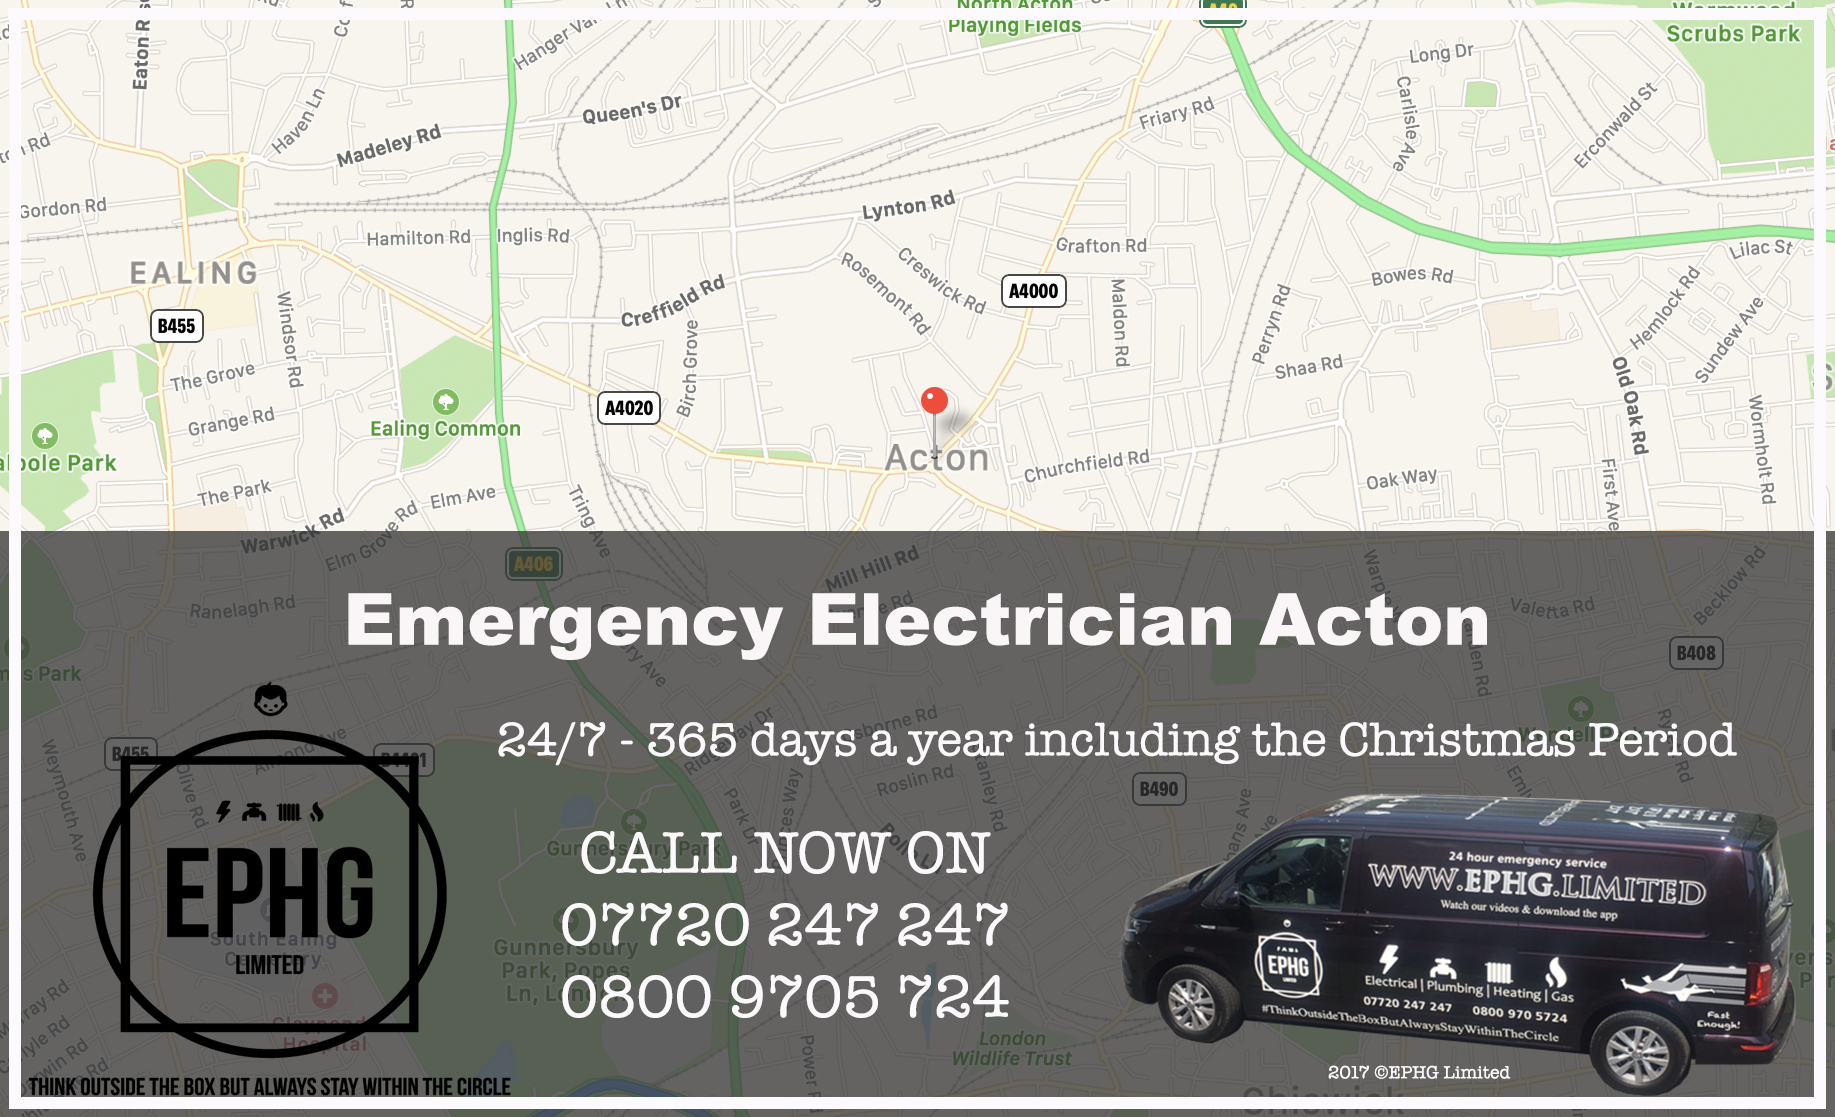 Emergency Electrician Acton